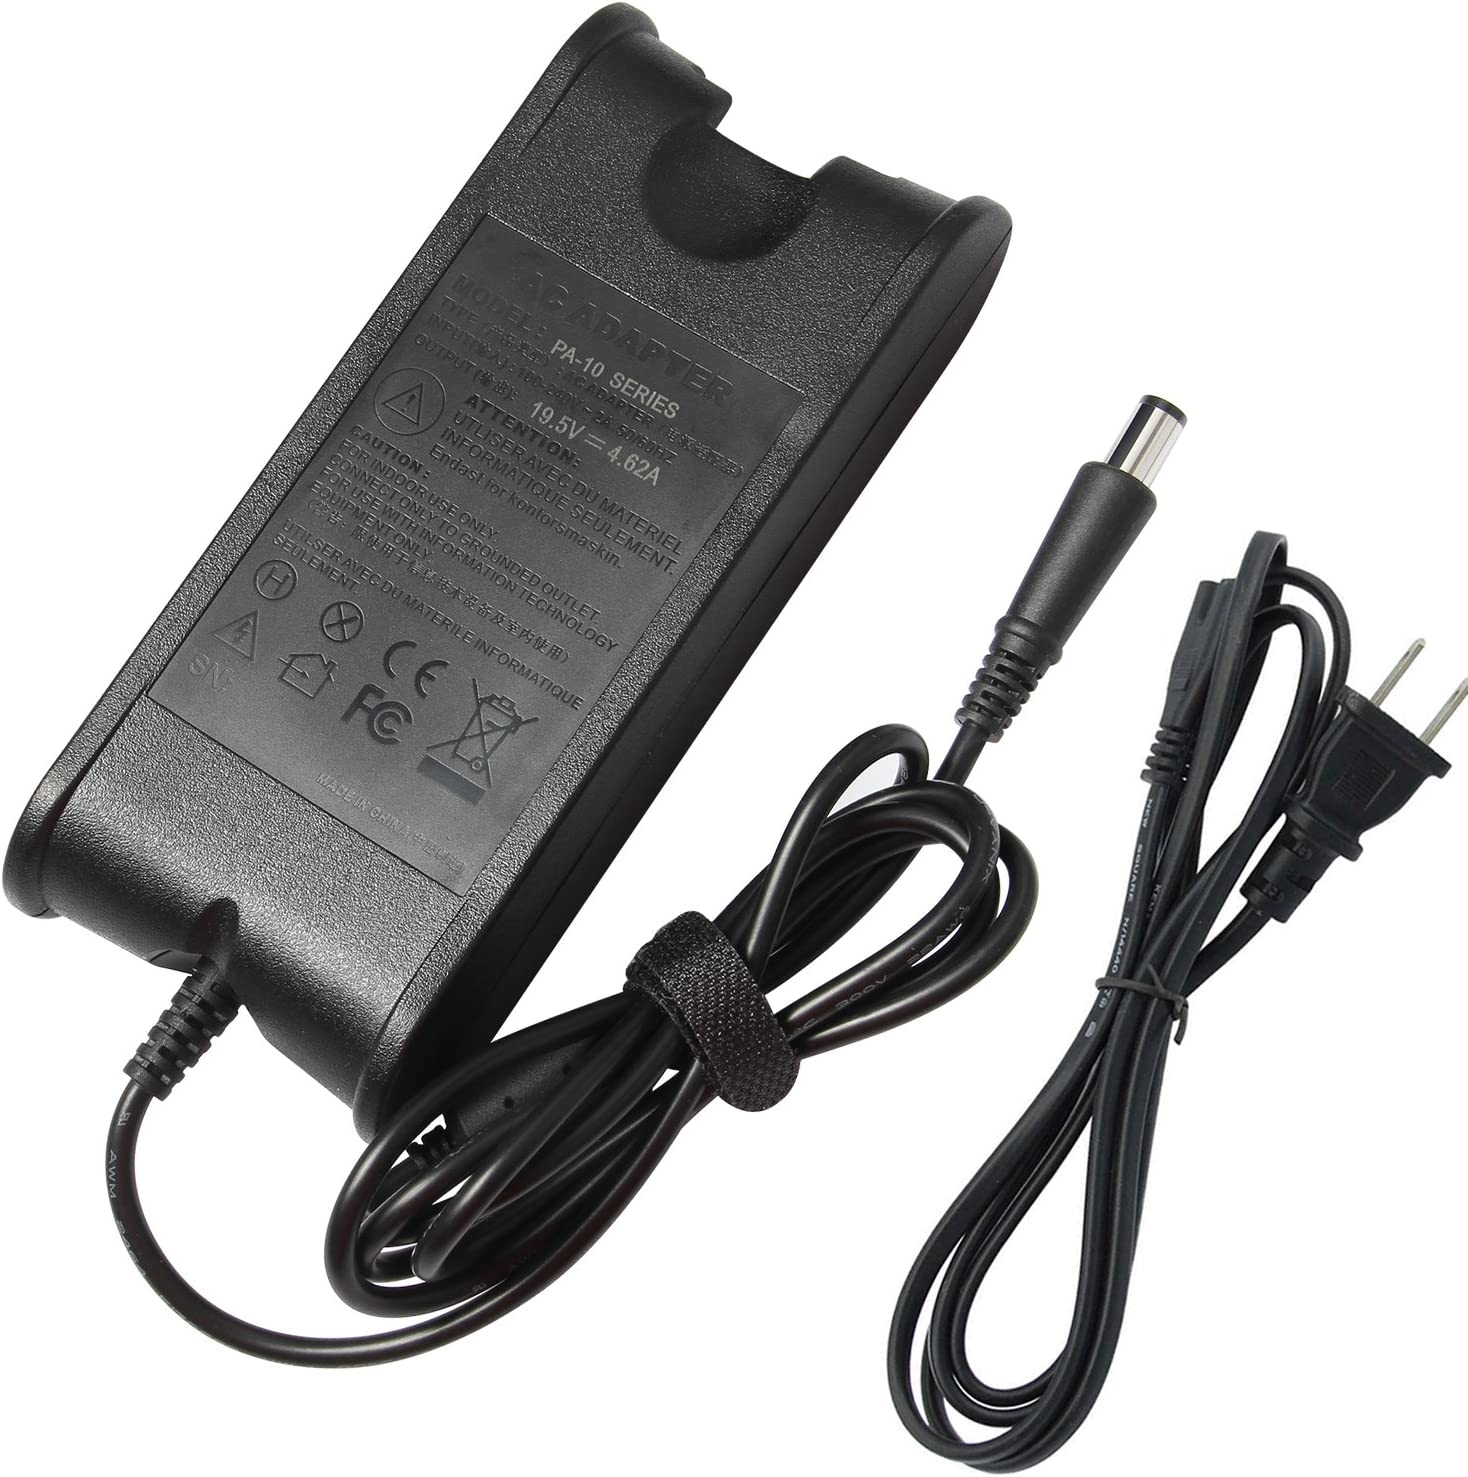 ,1536,1537,1555 ,1457,1458,15 1440 Original 65W Cord//Charge Dell Studio 14z 1535